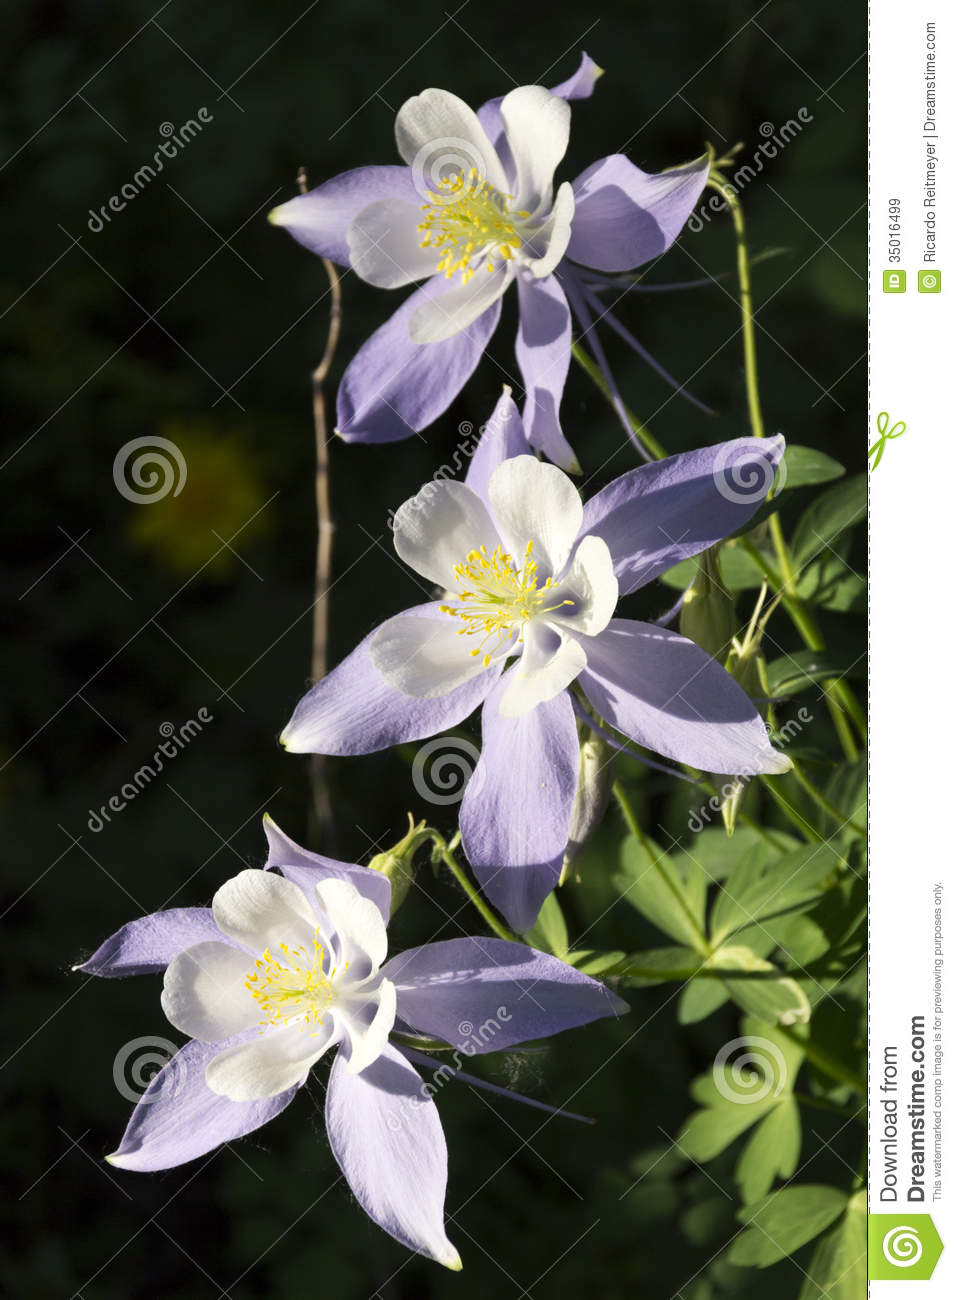 Beautiful colorado alpine columbine flowers along vail mountain beautiful colorado alpine columbine flowers along vail mountain hiking trail purple plant izmirmasajfo